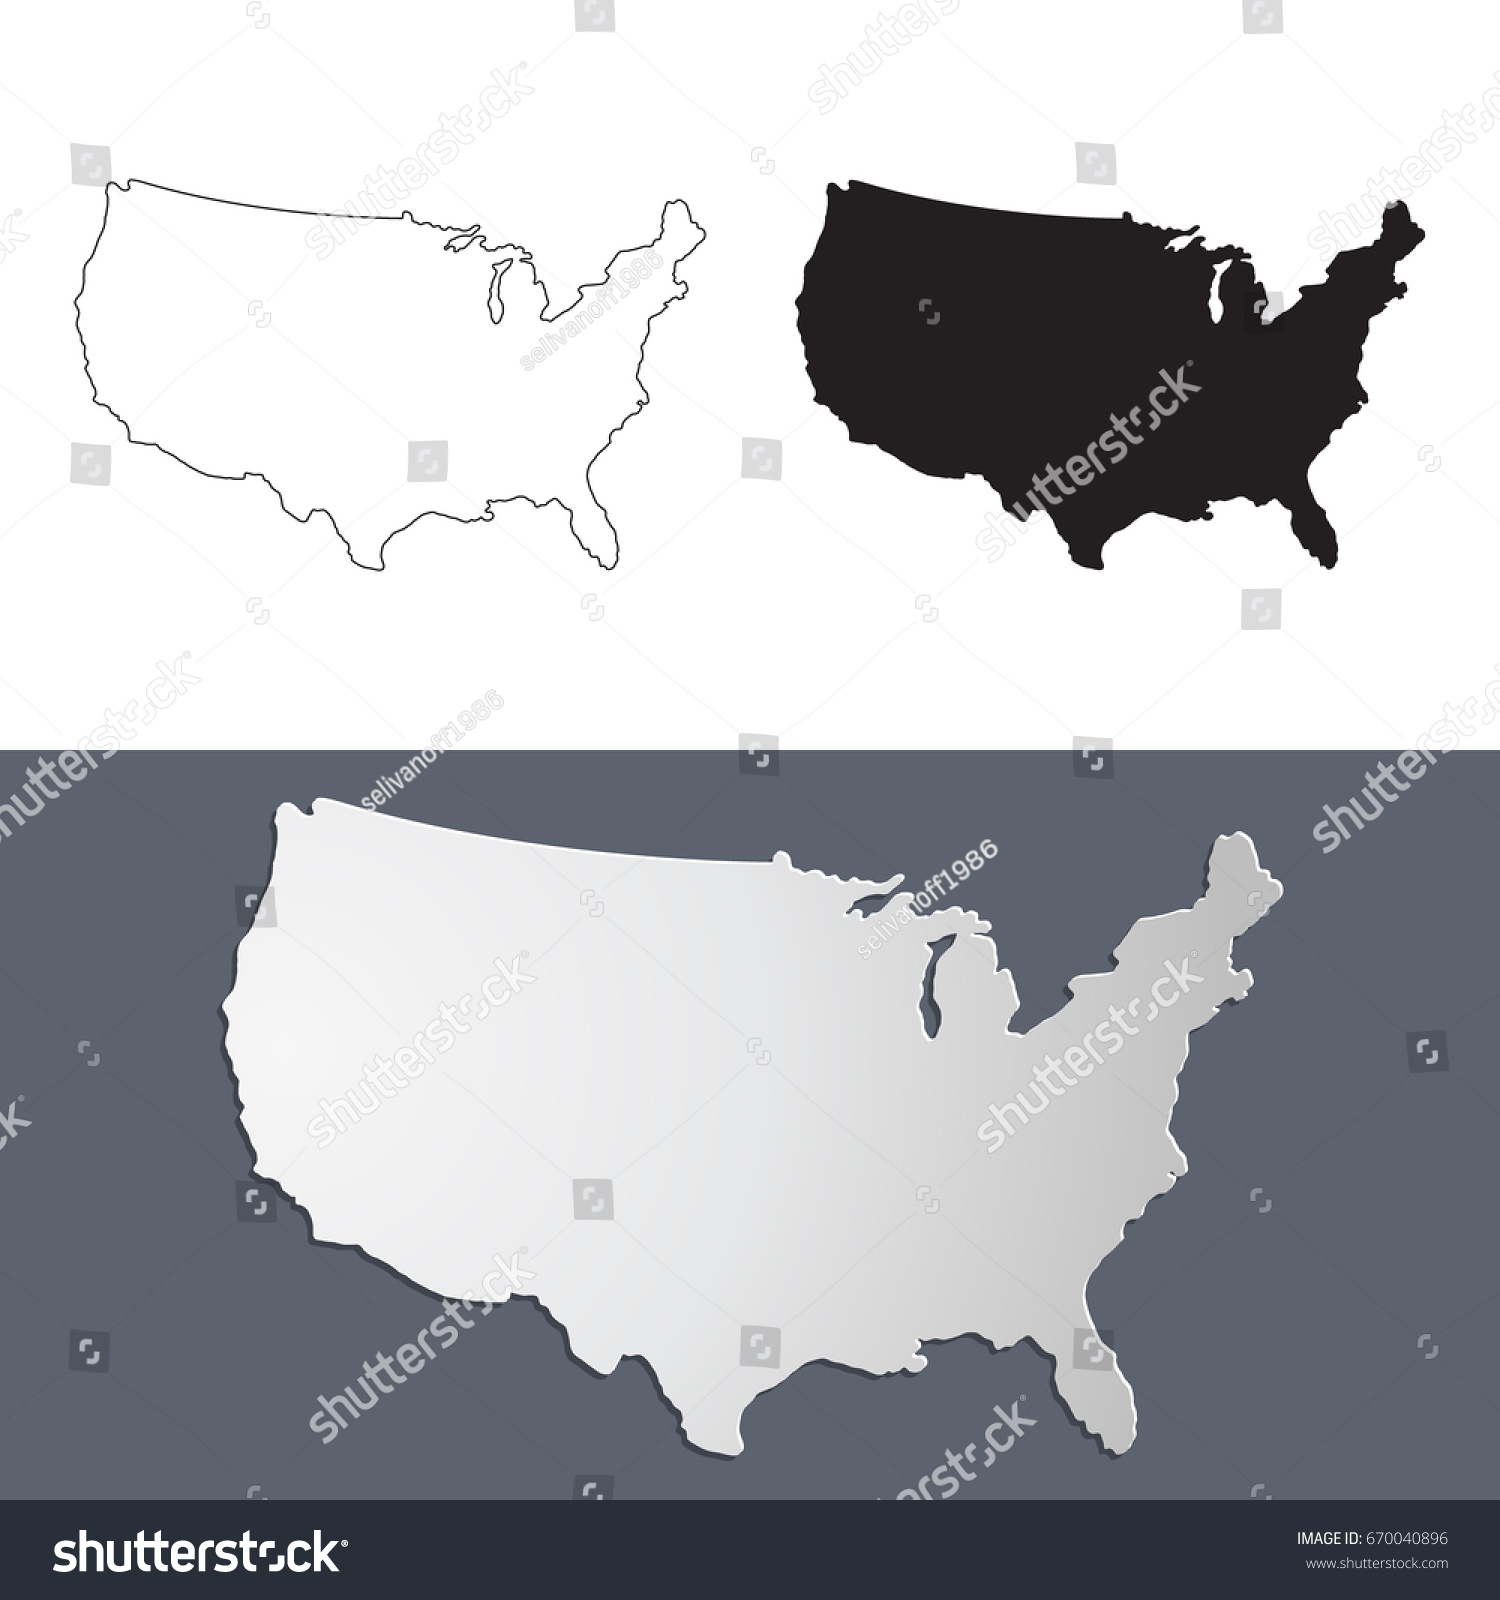 Usa Map Black Ink Usa Flag Usa Outline Black New York Black - Us map black and white